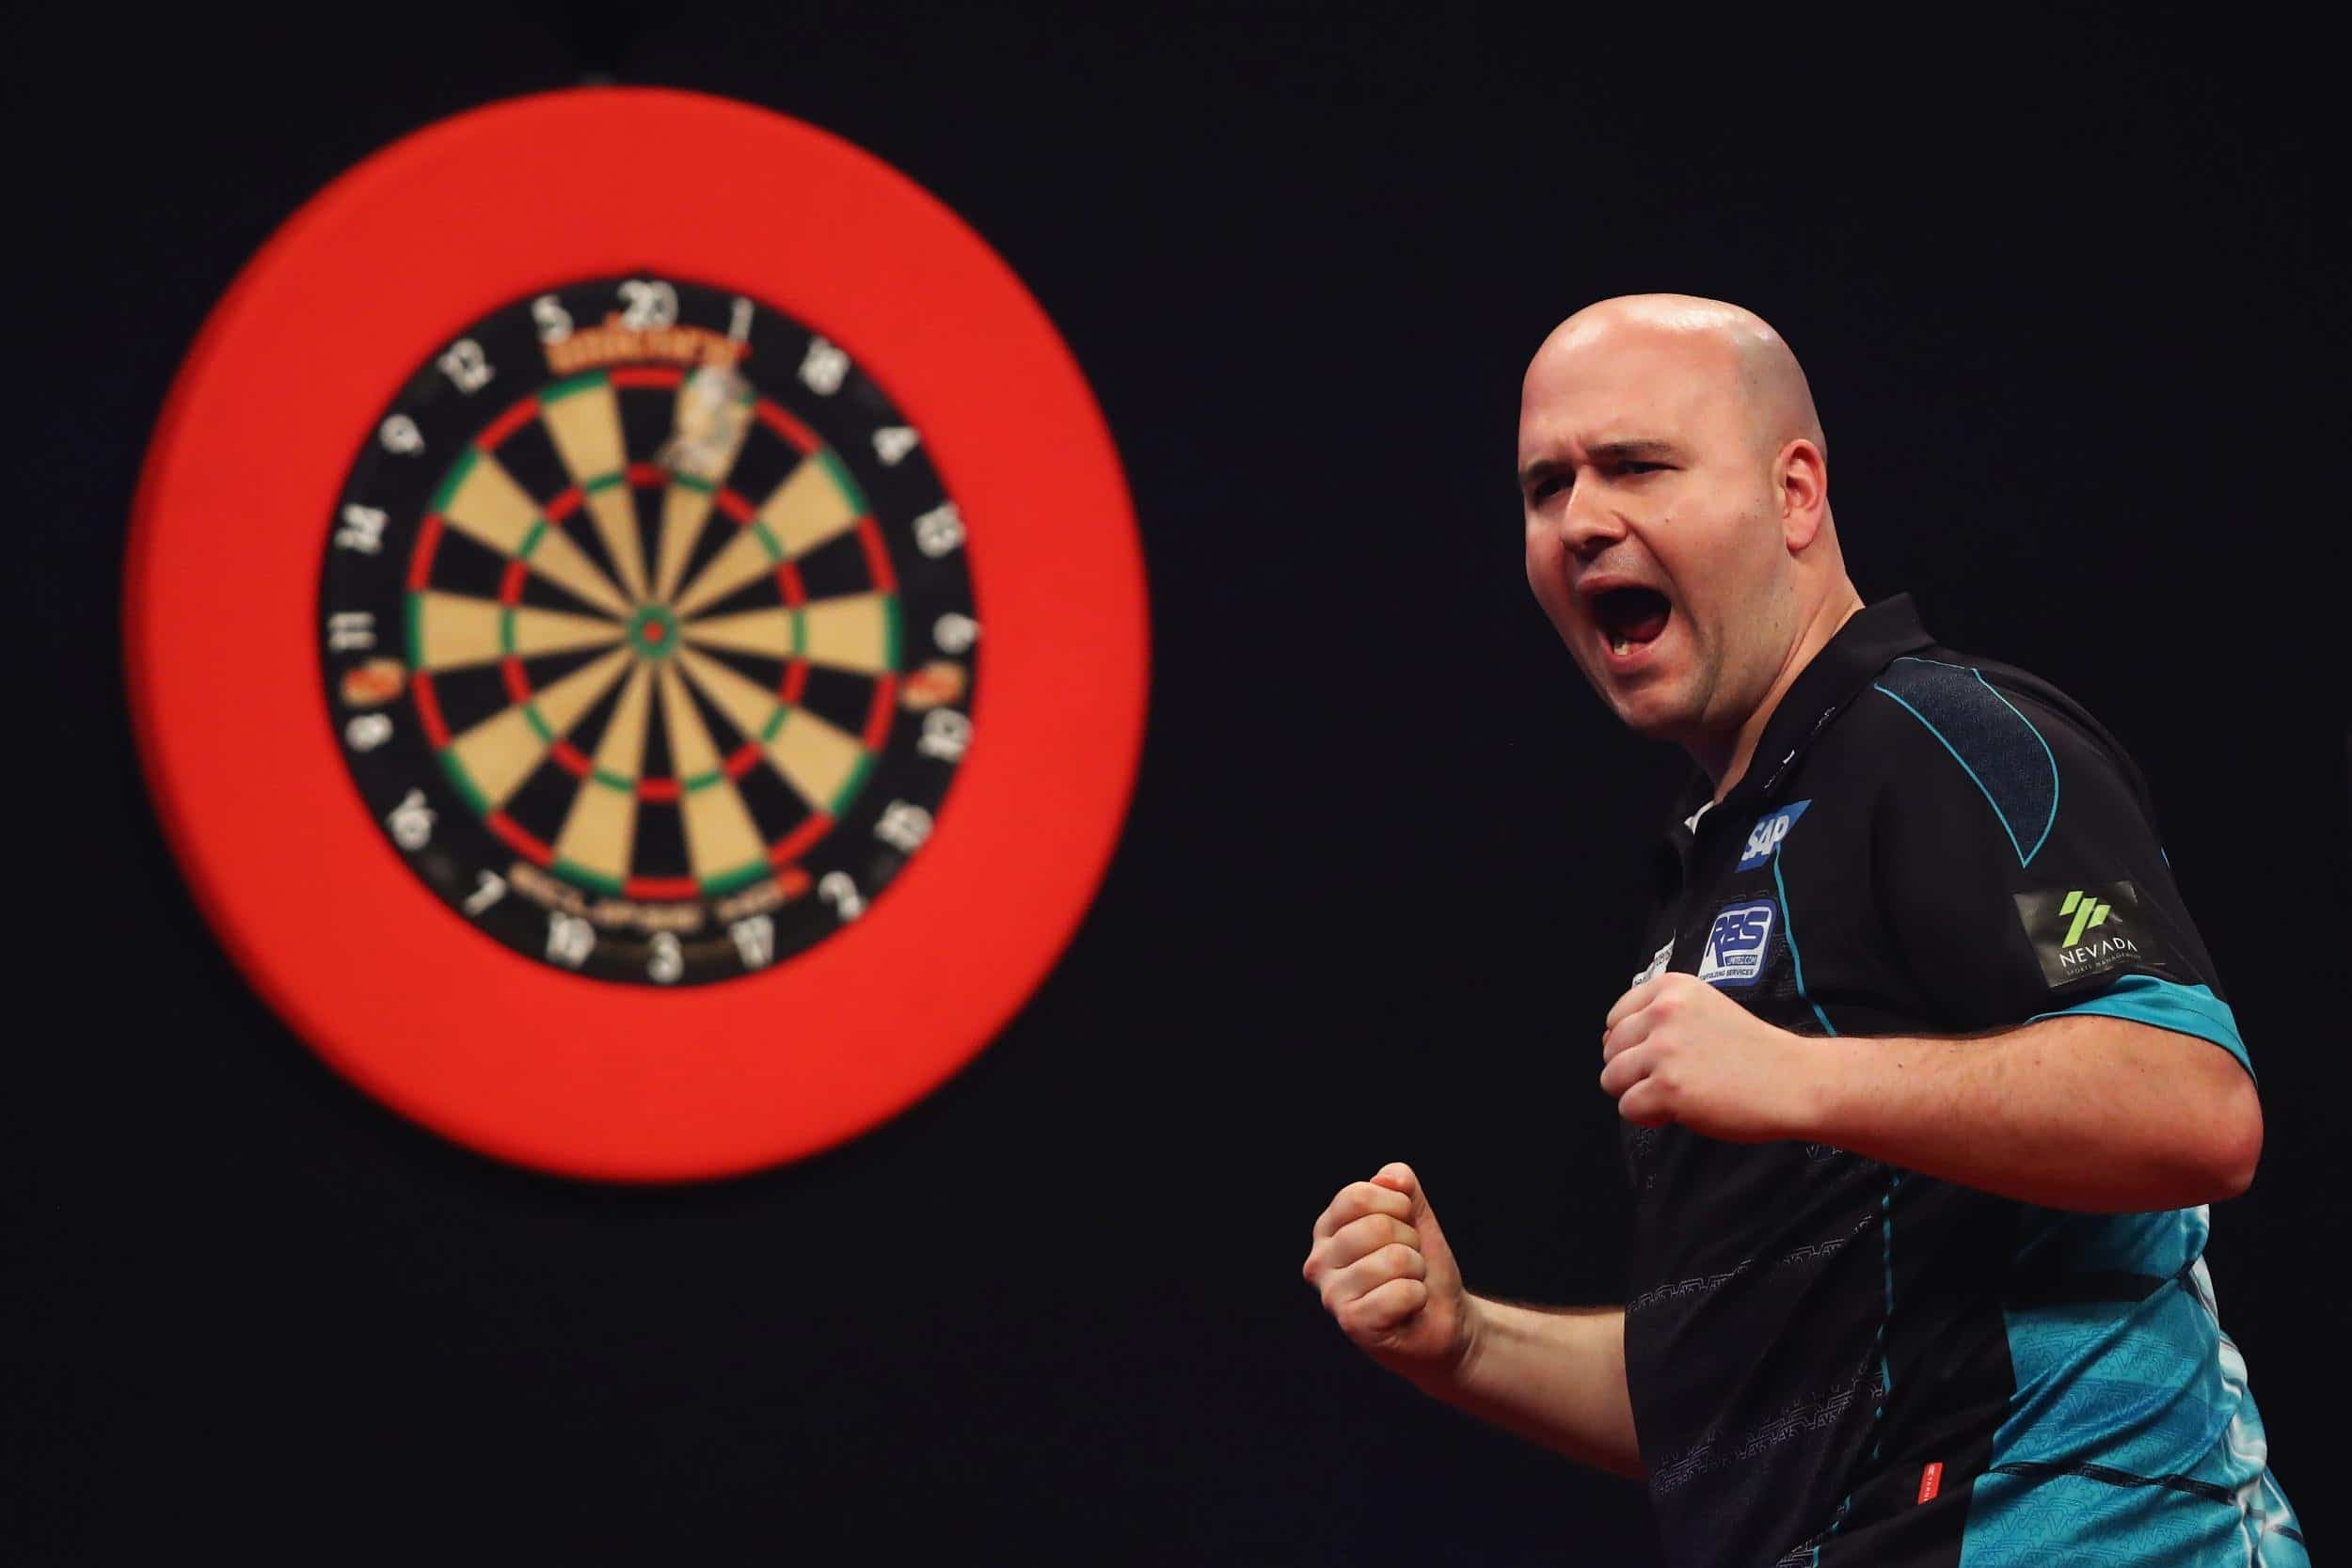 Uk open darts betting odds barakaldo vs valencia betting